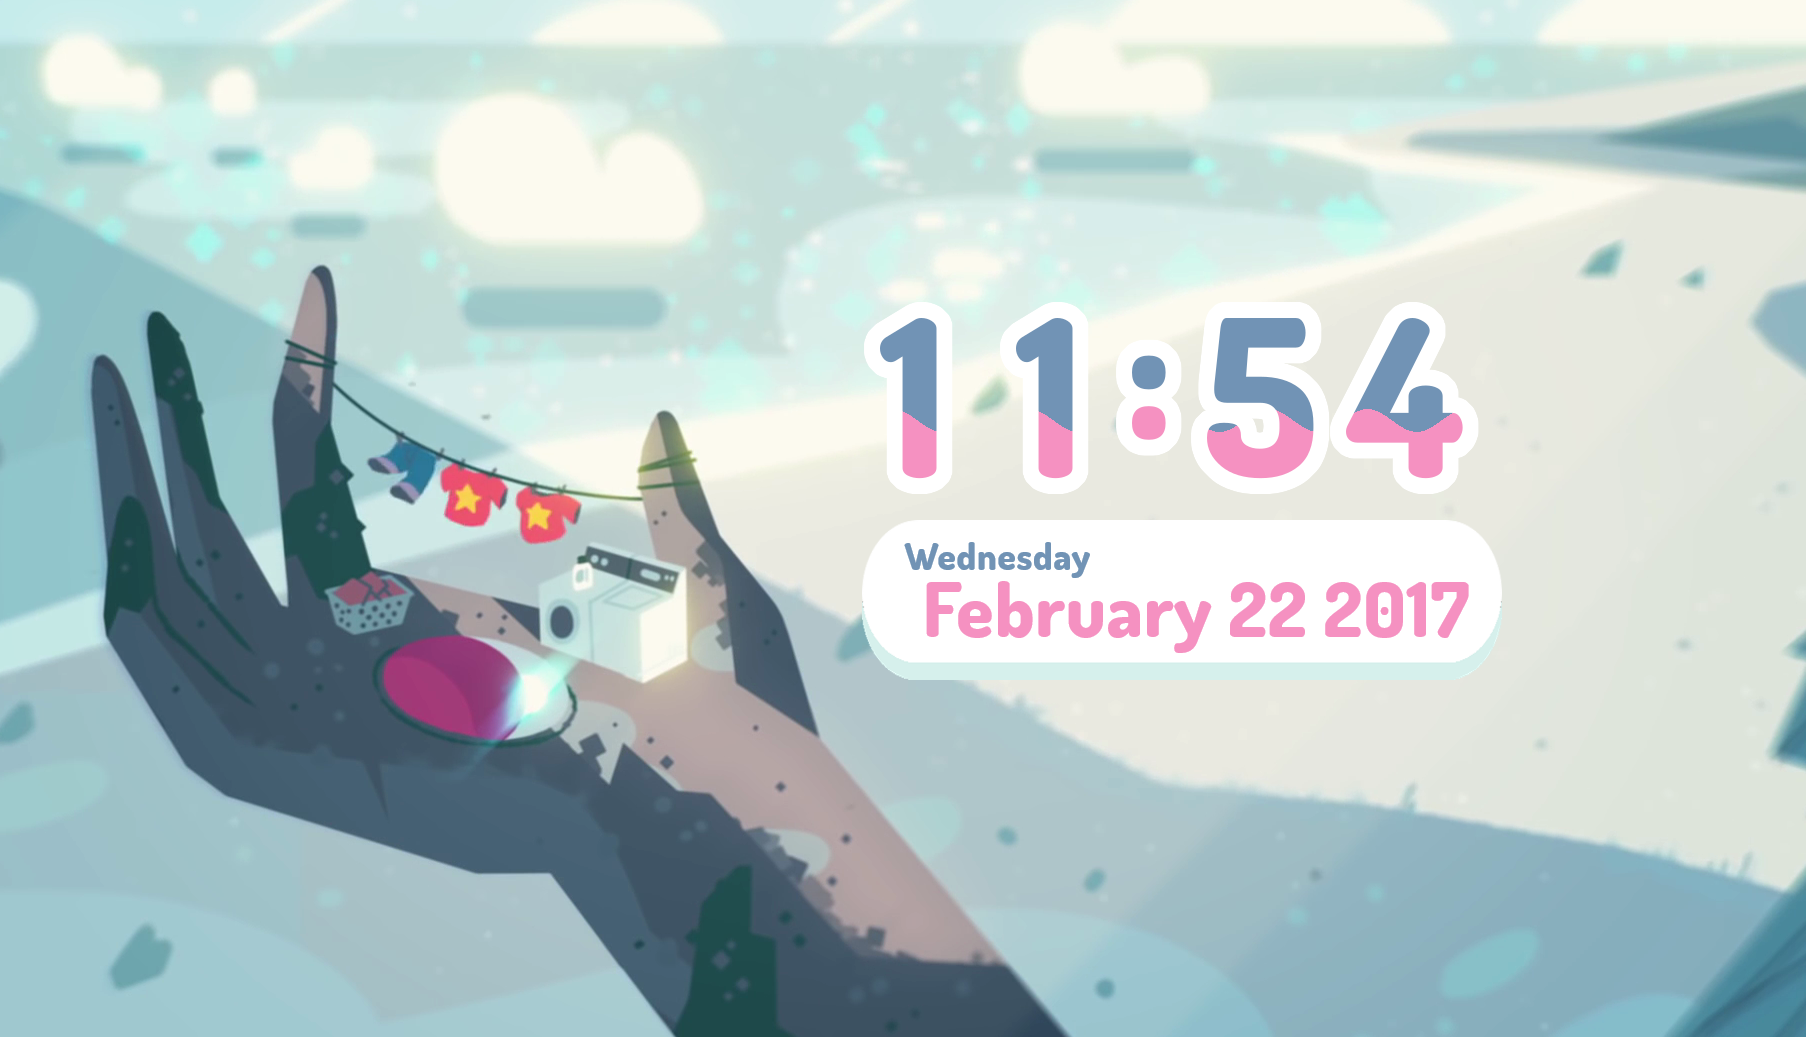 Creative Rainmeter skins favourites by MarcoPixel on DeviantArt